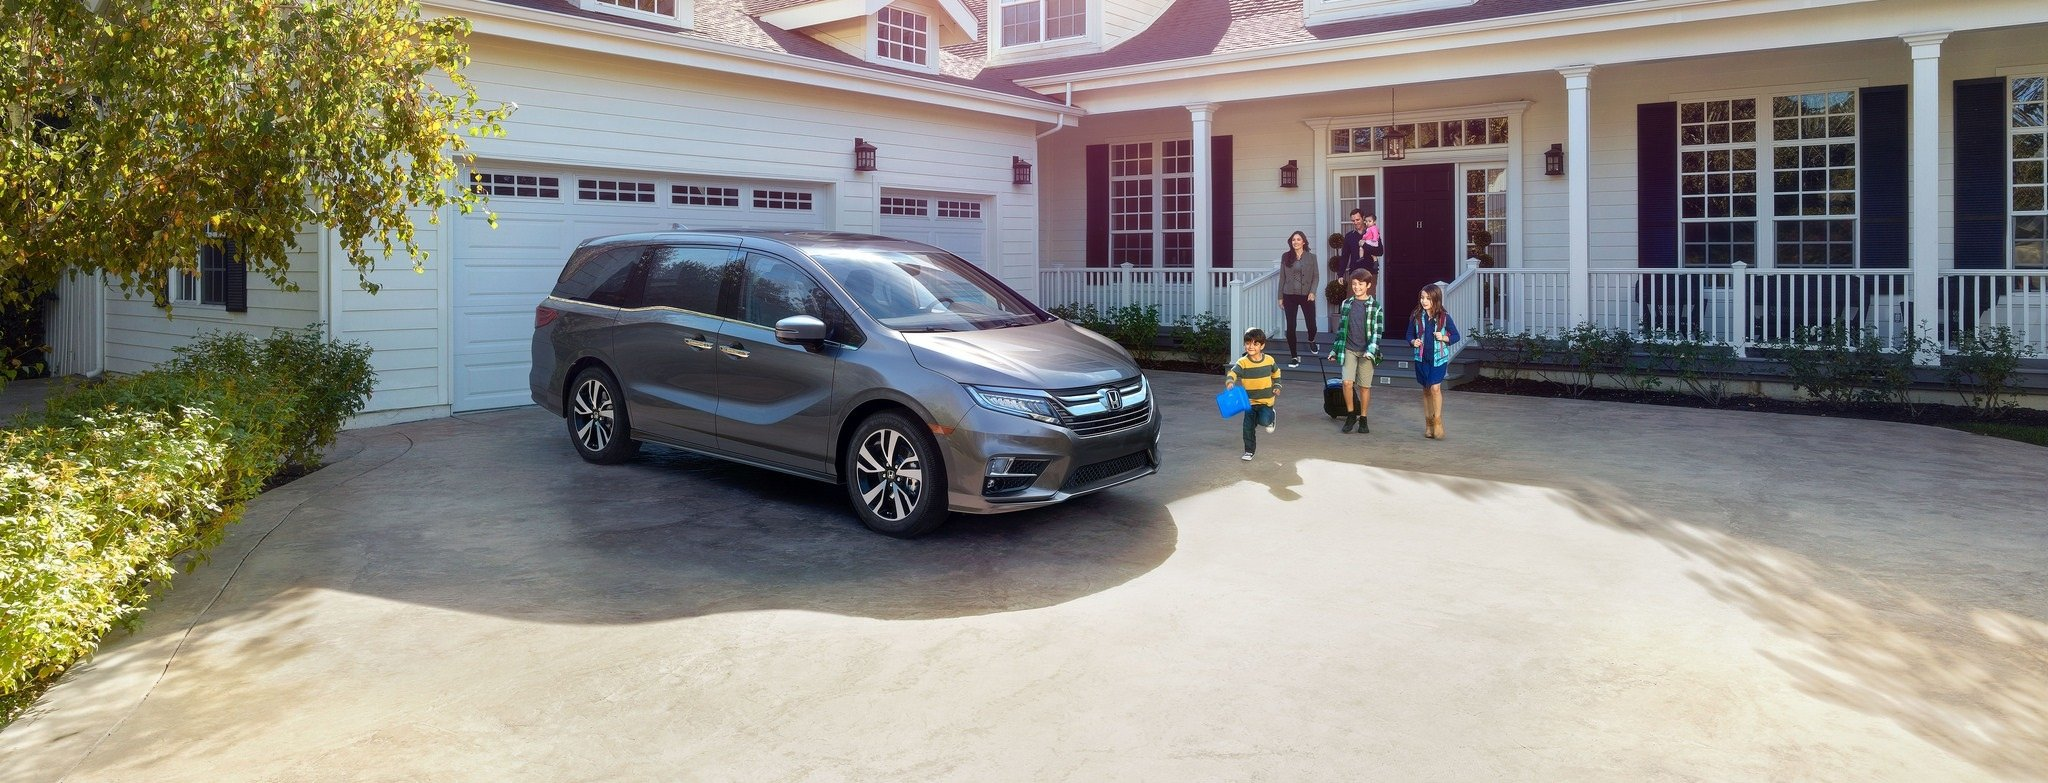 2018 Honda Odyssey in front of house - Milwaukee, WI